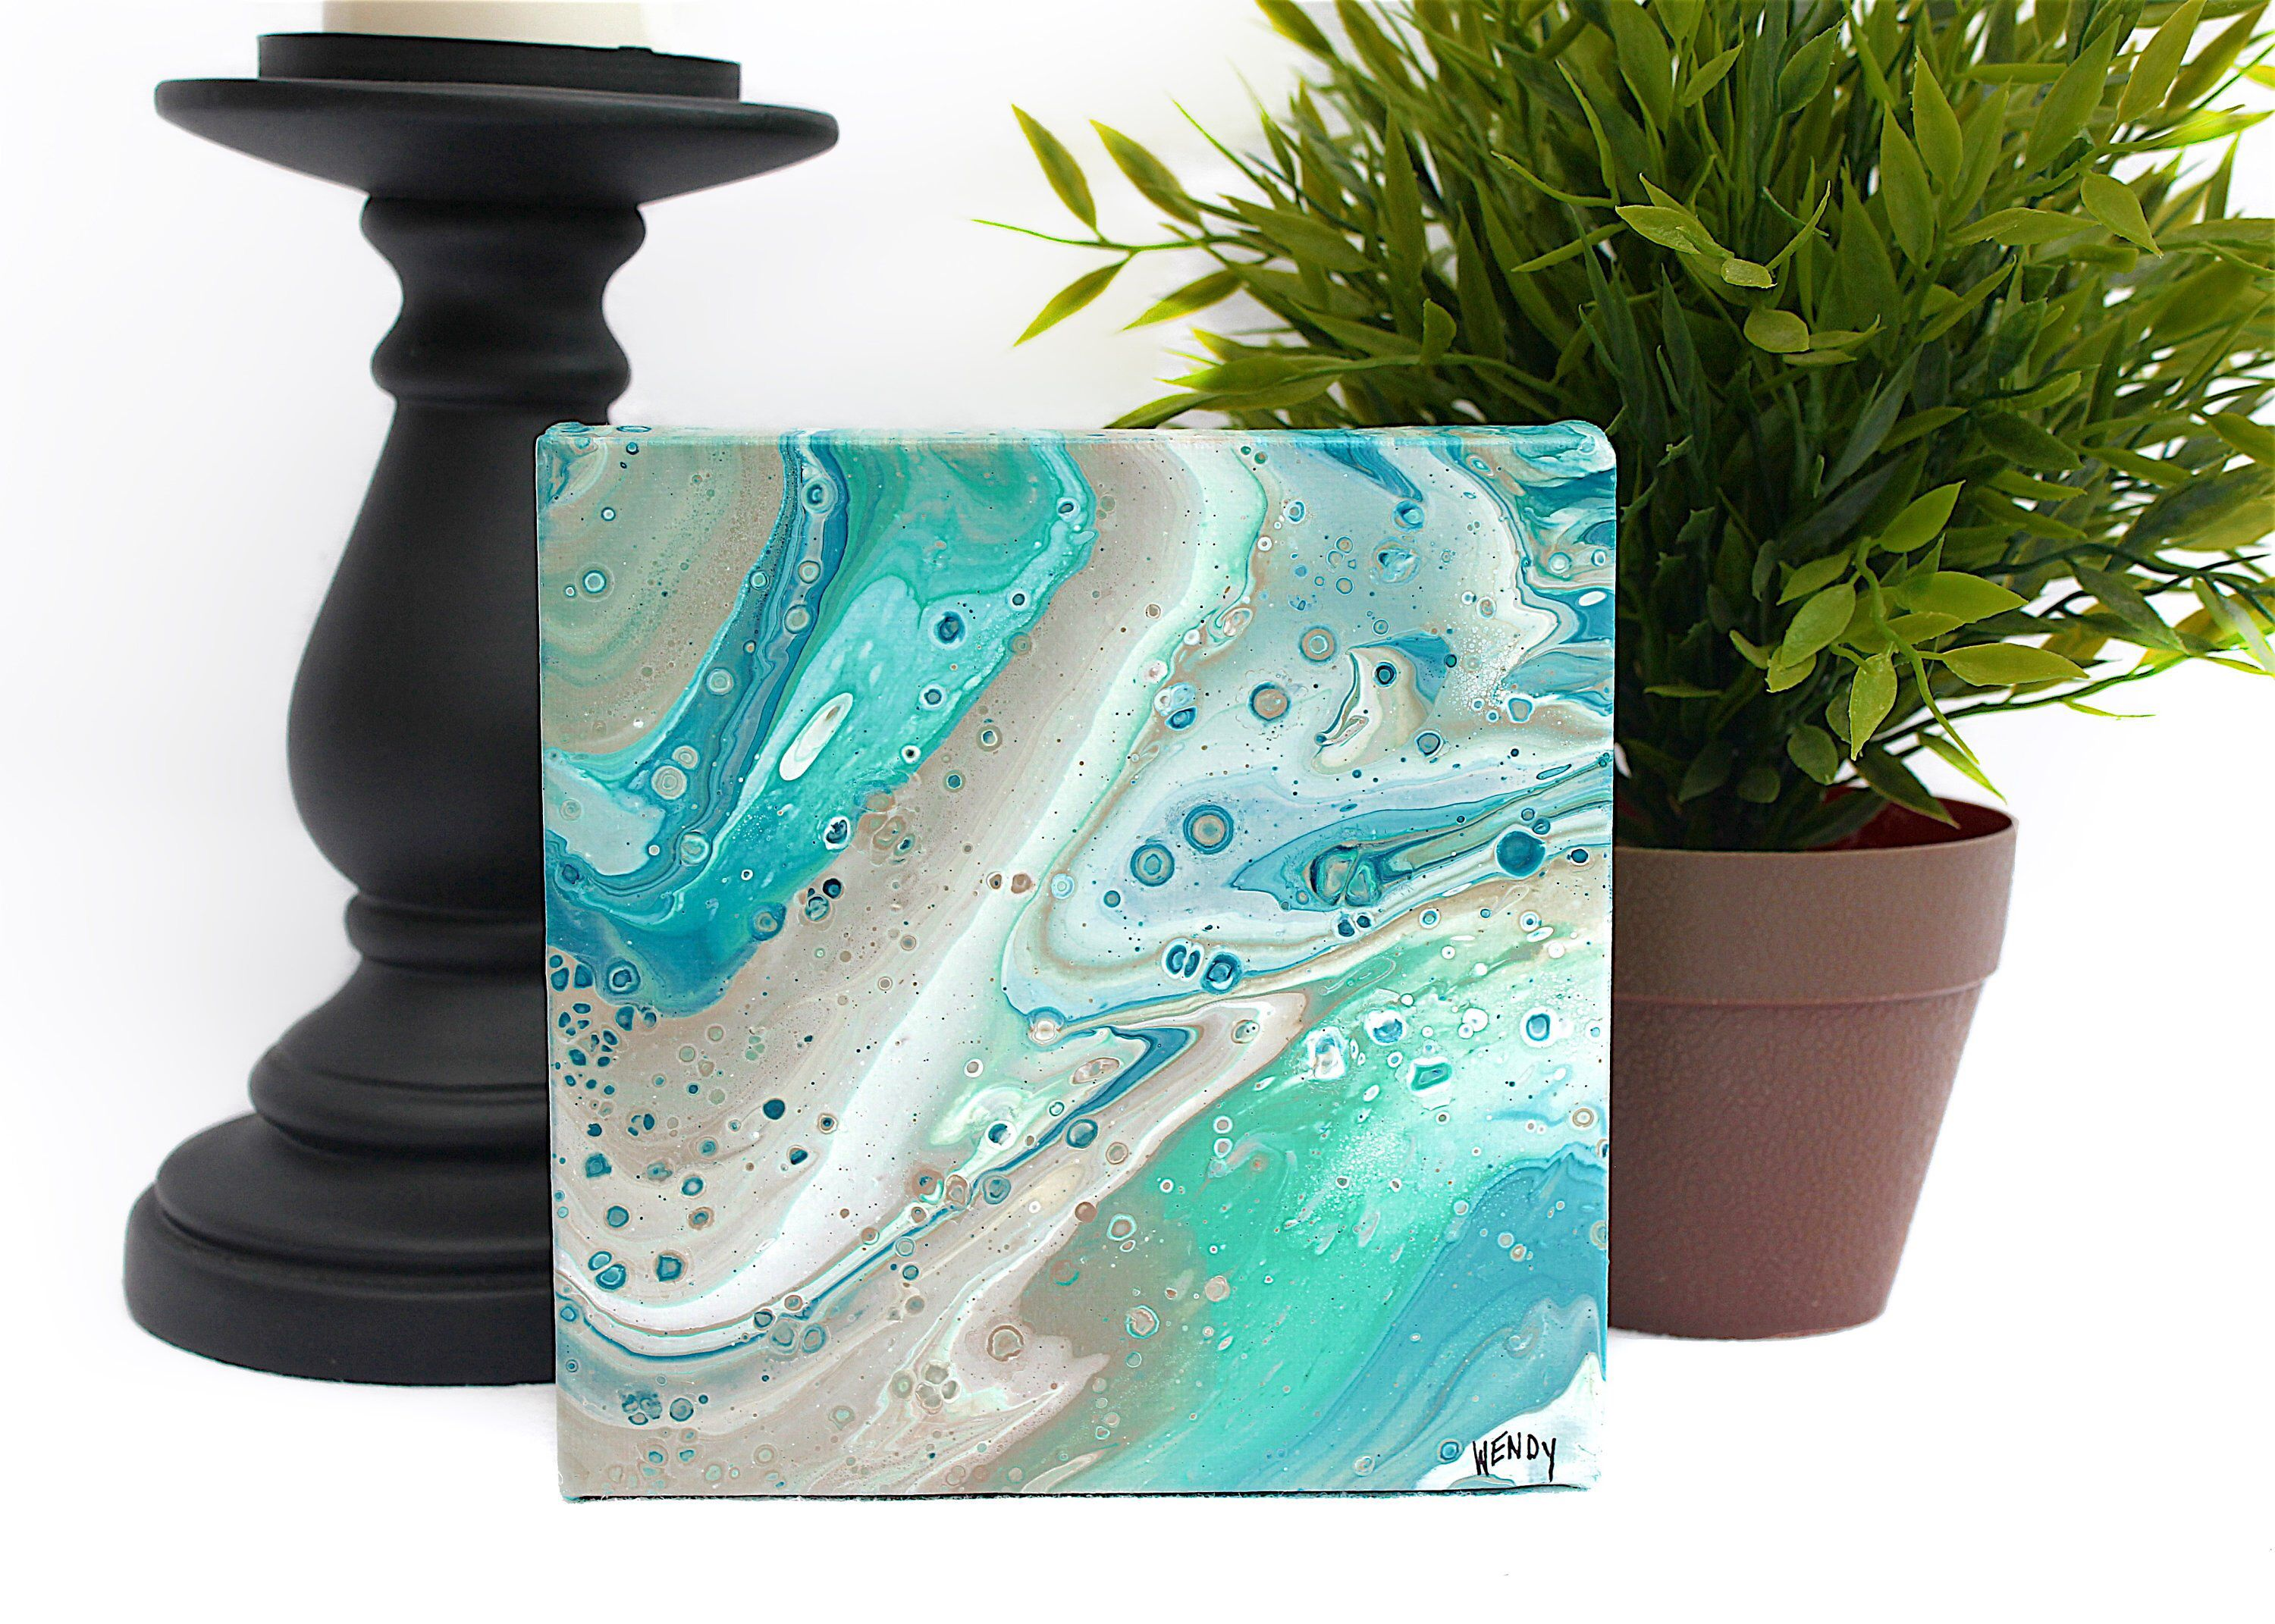 Original abstract beach x square canvas pour painting blue teal